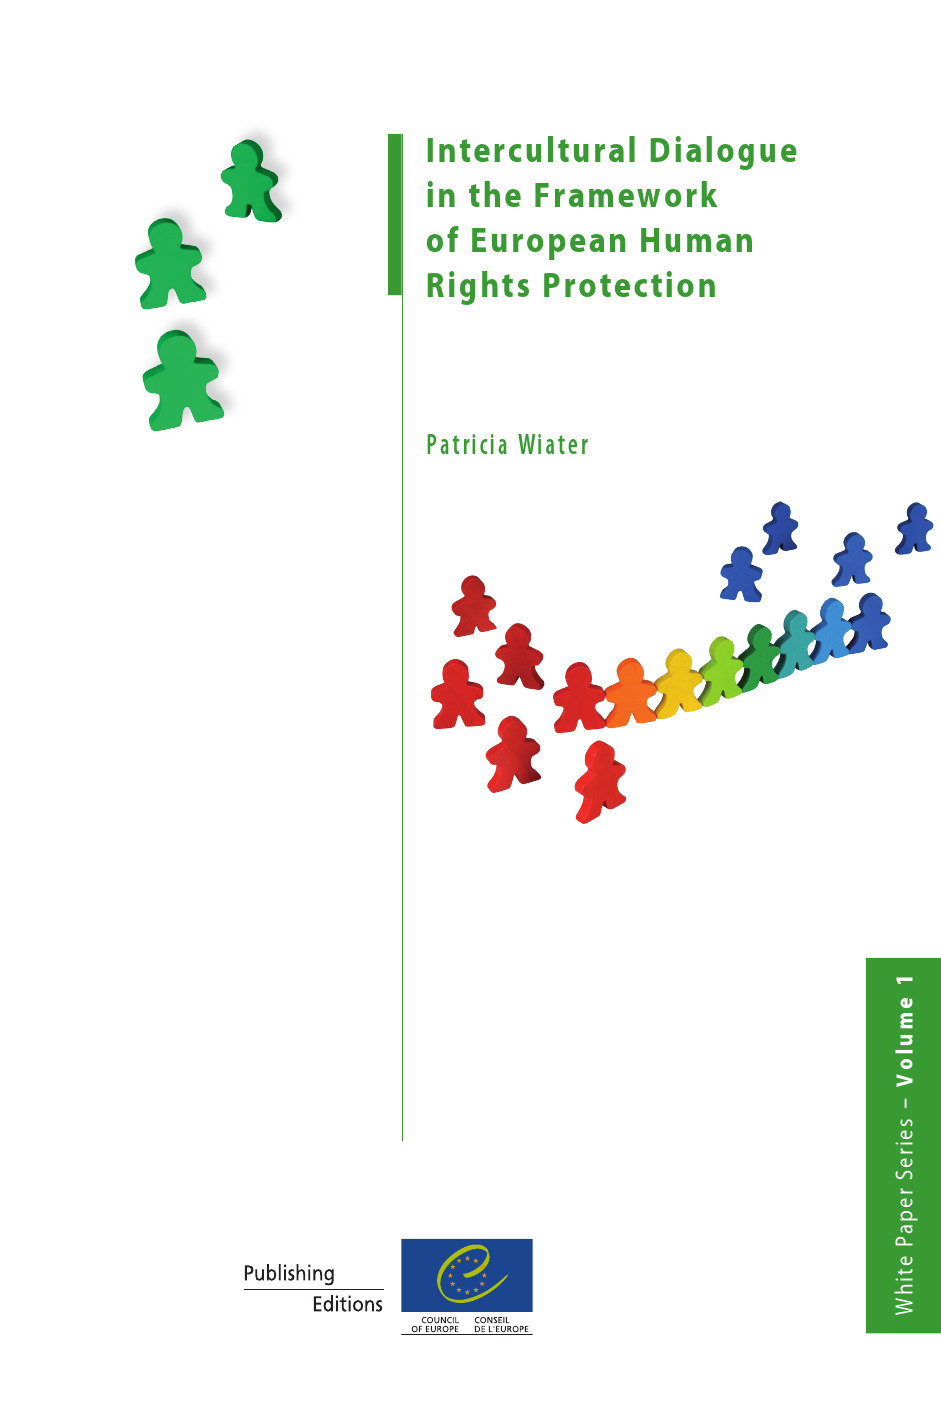 Intercultural Dialogue in the Framework of European Human Rights Protection